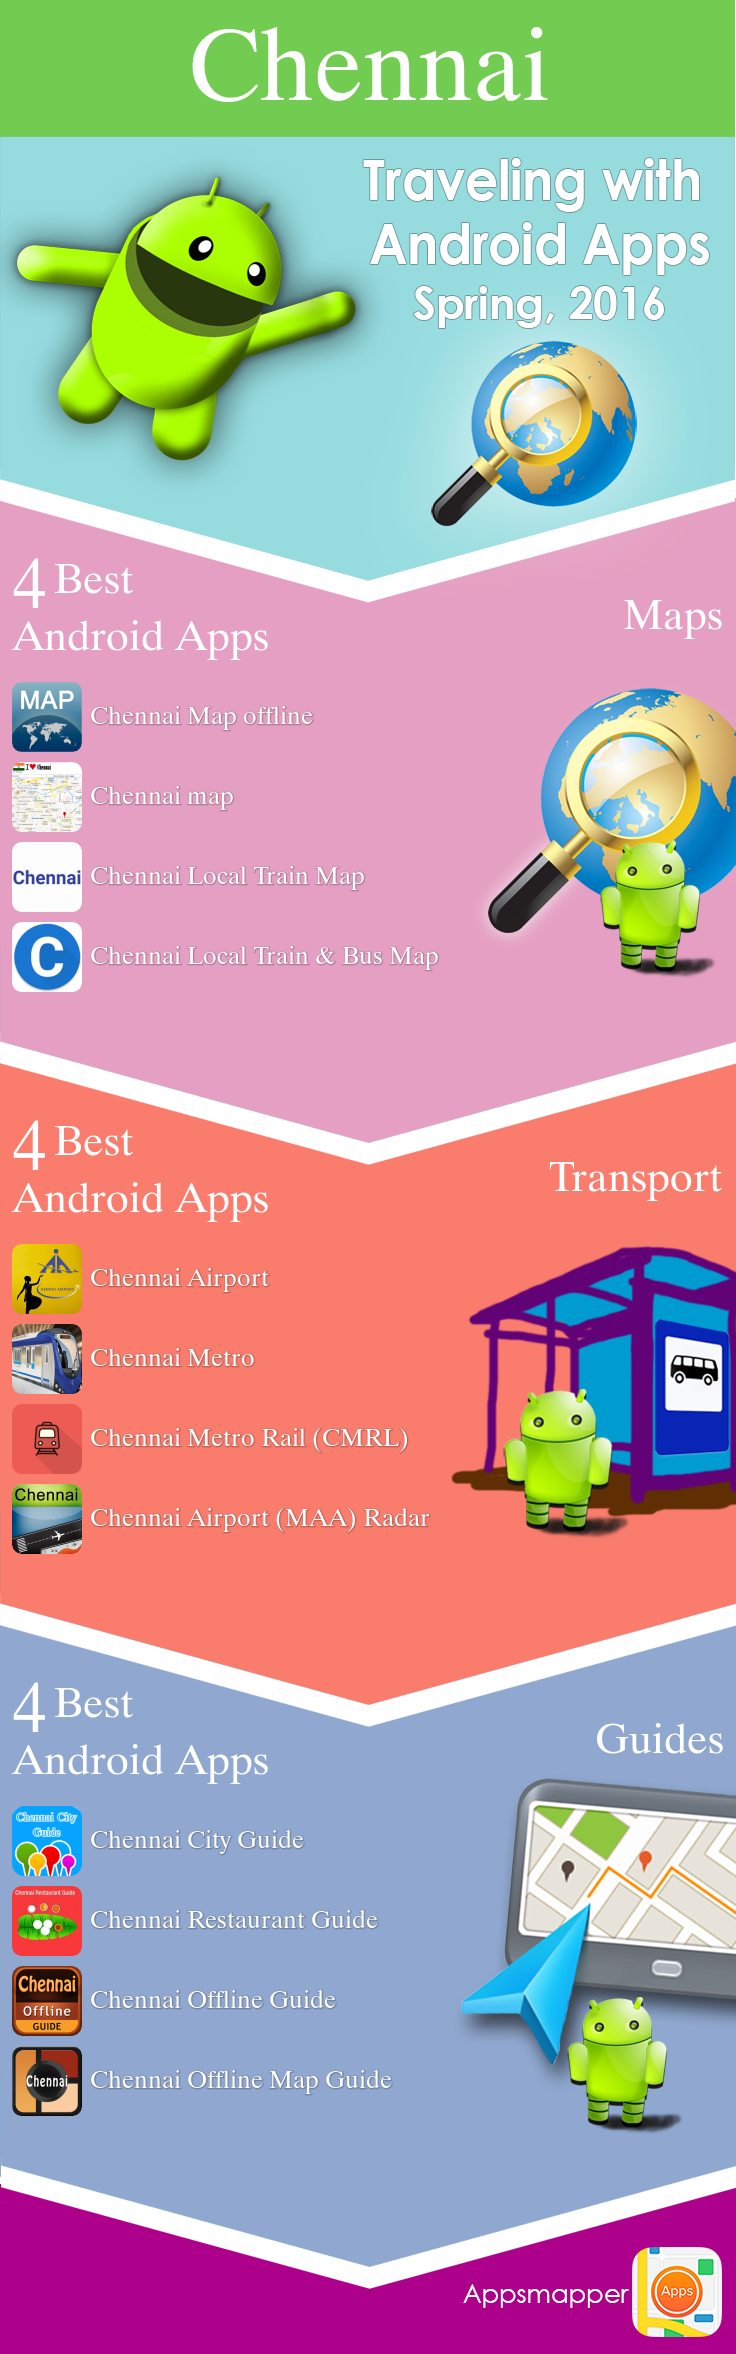 Chennai Android apps Travel Guides, Maps, Transportation